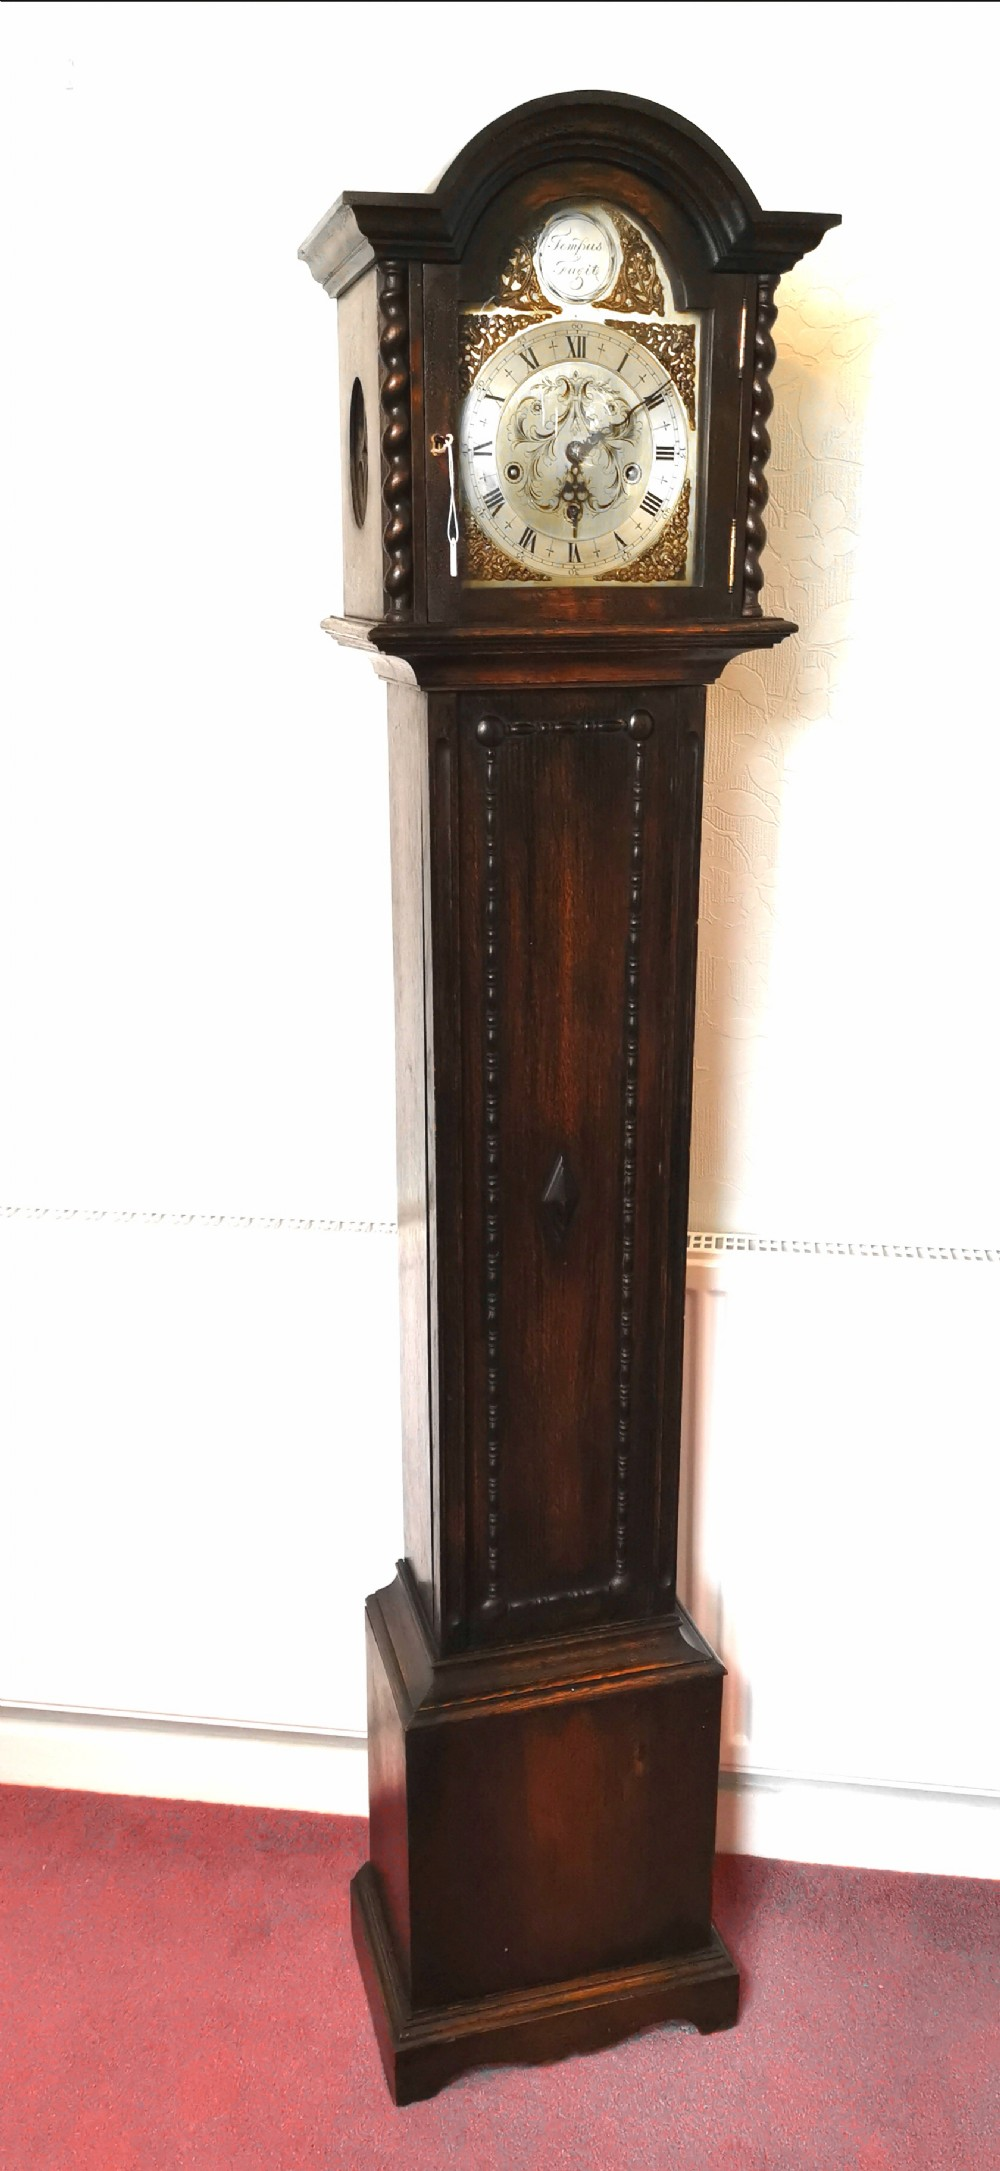 sweet sounding english early 20th c oak petit grandfather or grandmother longcase clock striking the hours playing musical chimes on each quarter